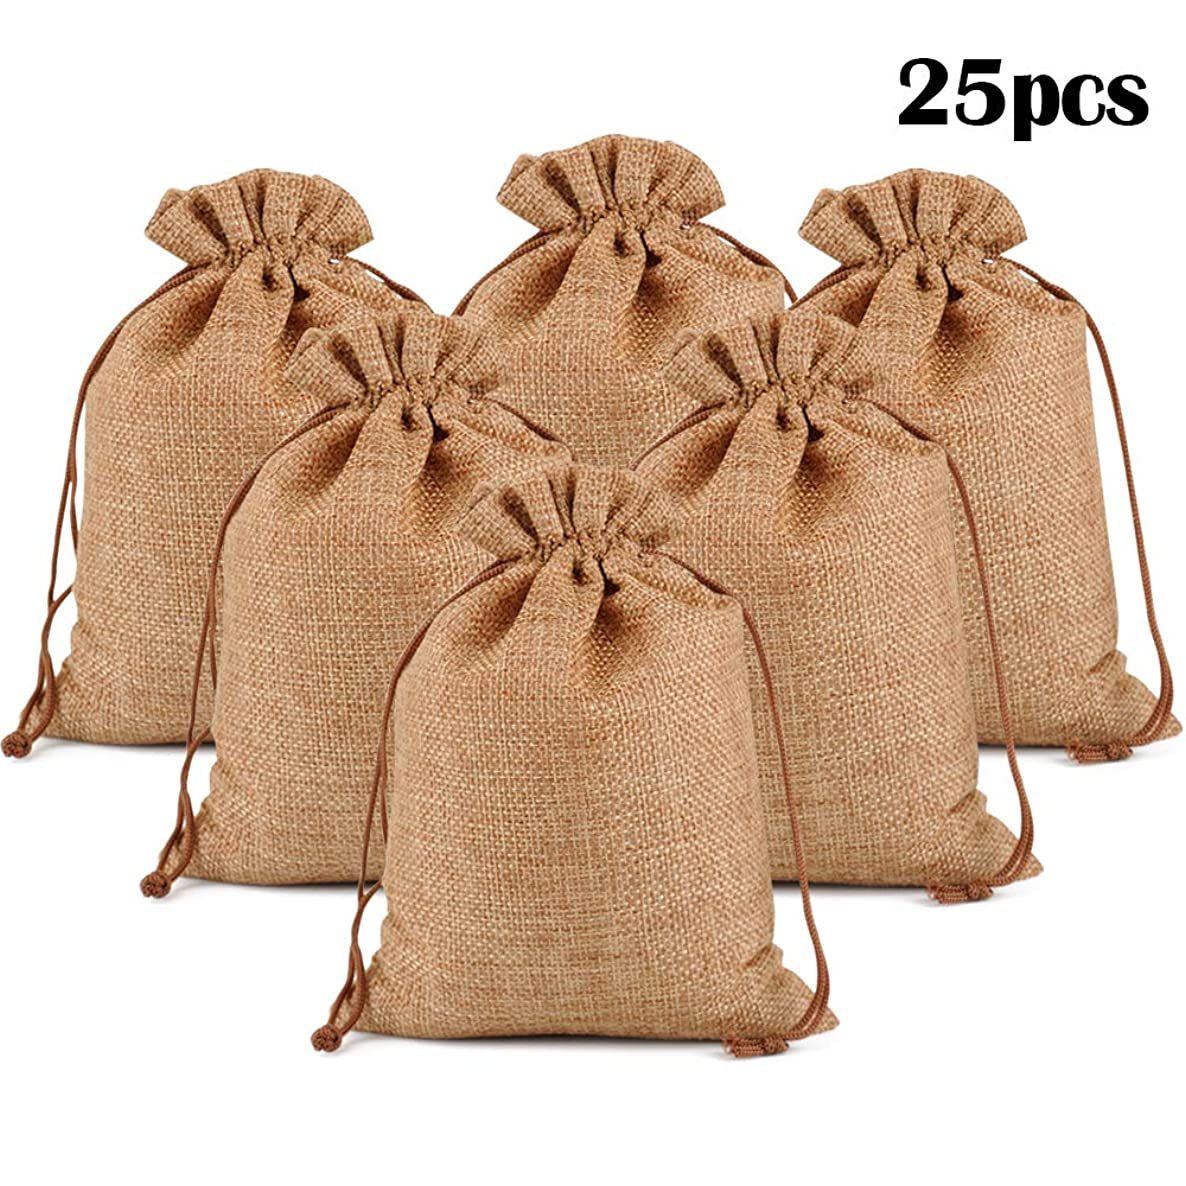 """Lucky Monet 25/50/100PCS Burlap Gift Bags Wedding Hessian Jute Bags Linen Jewelry Pouches with Drawstring for Birthday, Party, Wedding Favors, Present, Art and DIY Craft (25Pcs, Coffee, 3"""" x 4"""") yujl5160087066"""